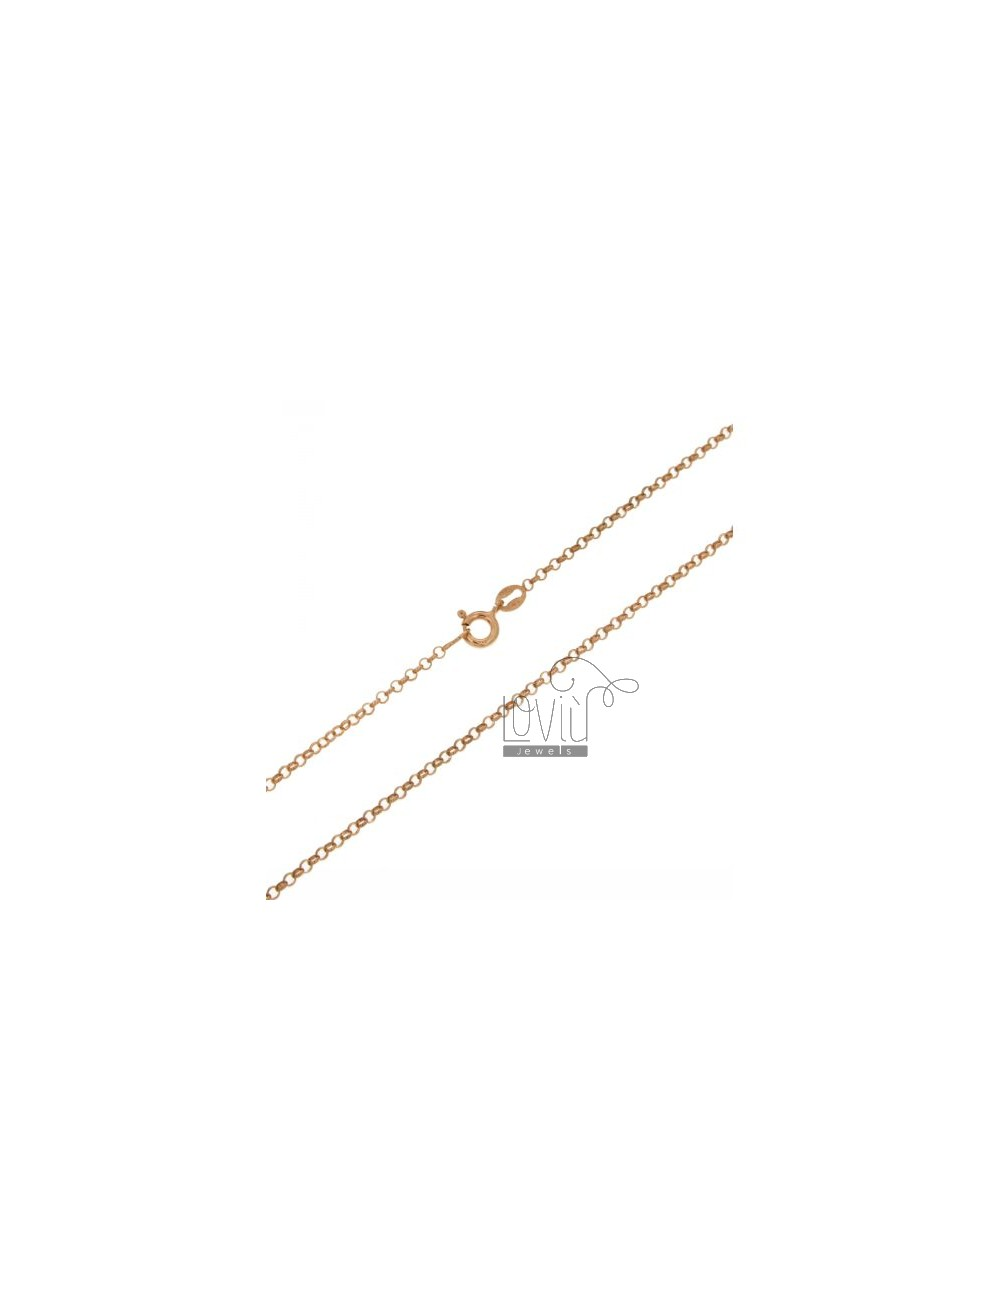 ROLO CHAIN 2 MM ROSE GOLD PLATED 60 CM IN AG TIT 925 ‰